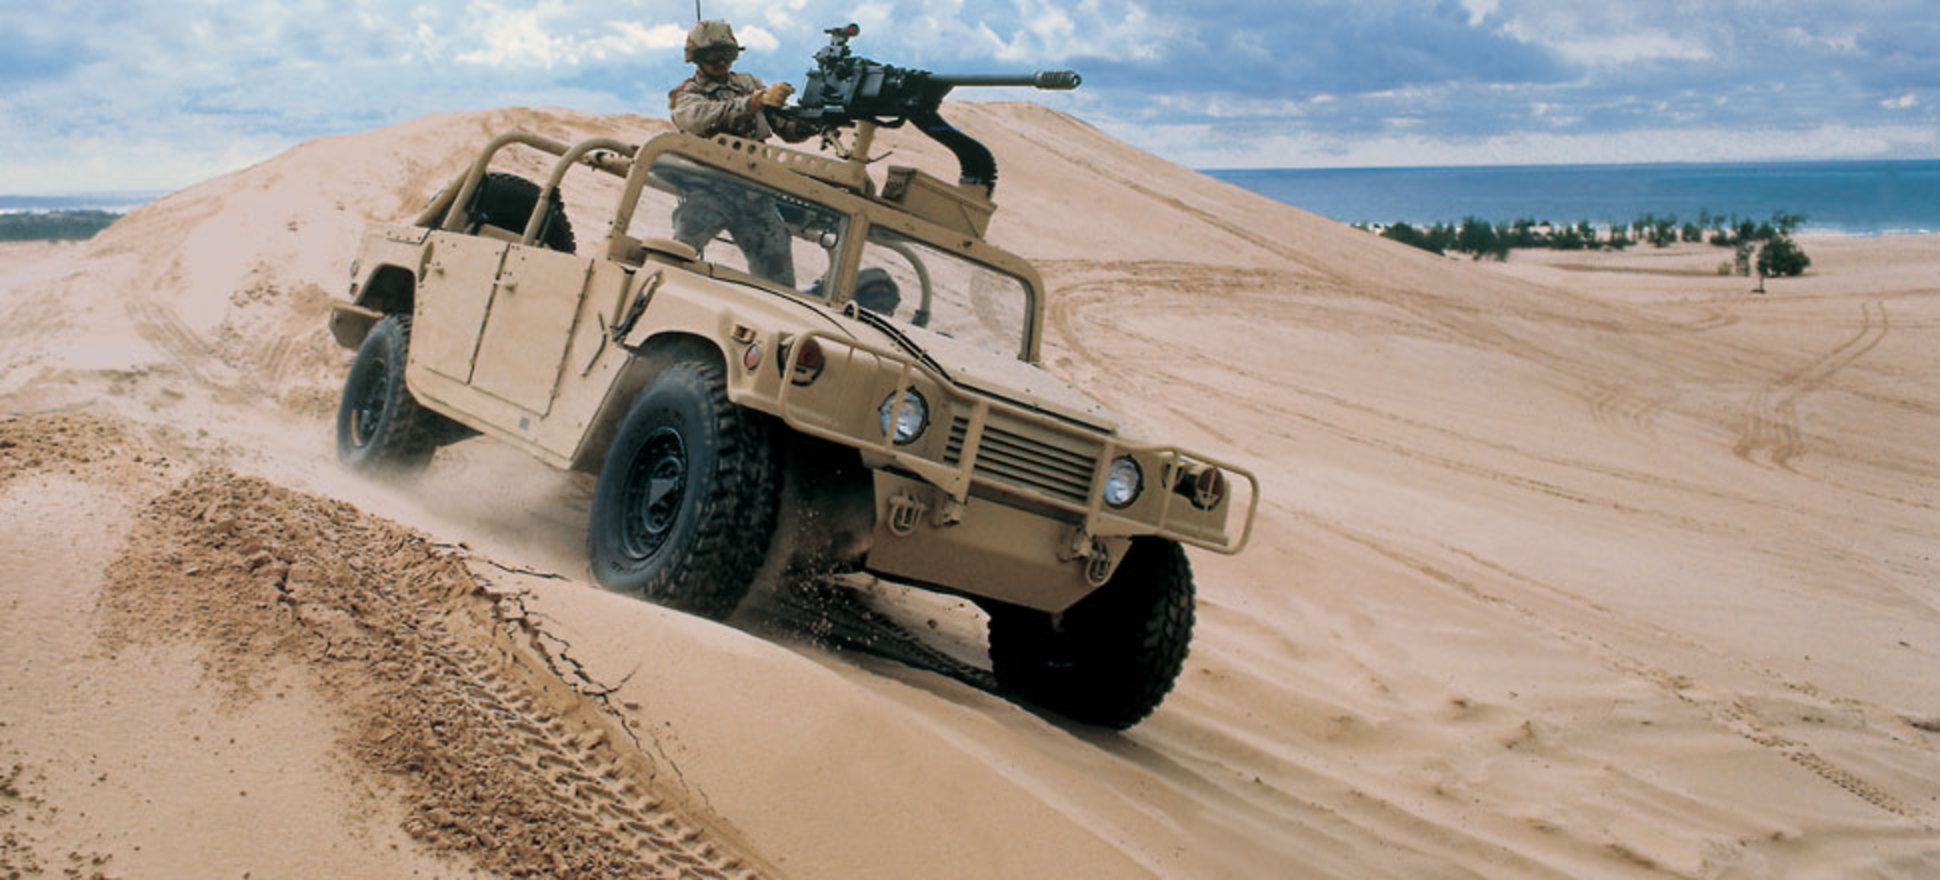 HMMWV (Humvee) | AM General LLC - Mobility solutions for the 21st ...